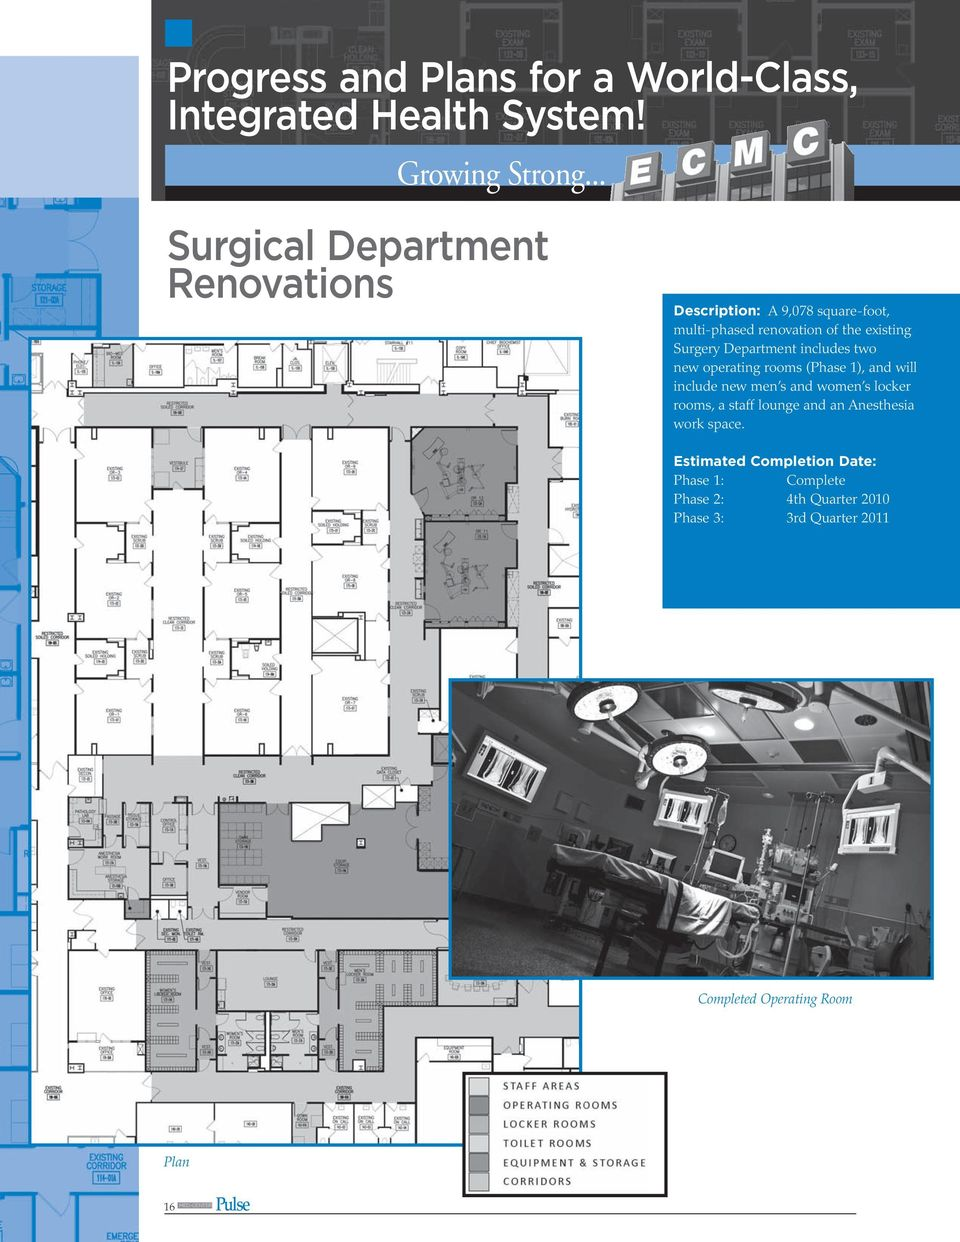 Department includes two new operating rooms (Phase 1), and will include new men s and women s locker rooms, a staff